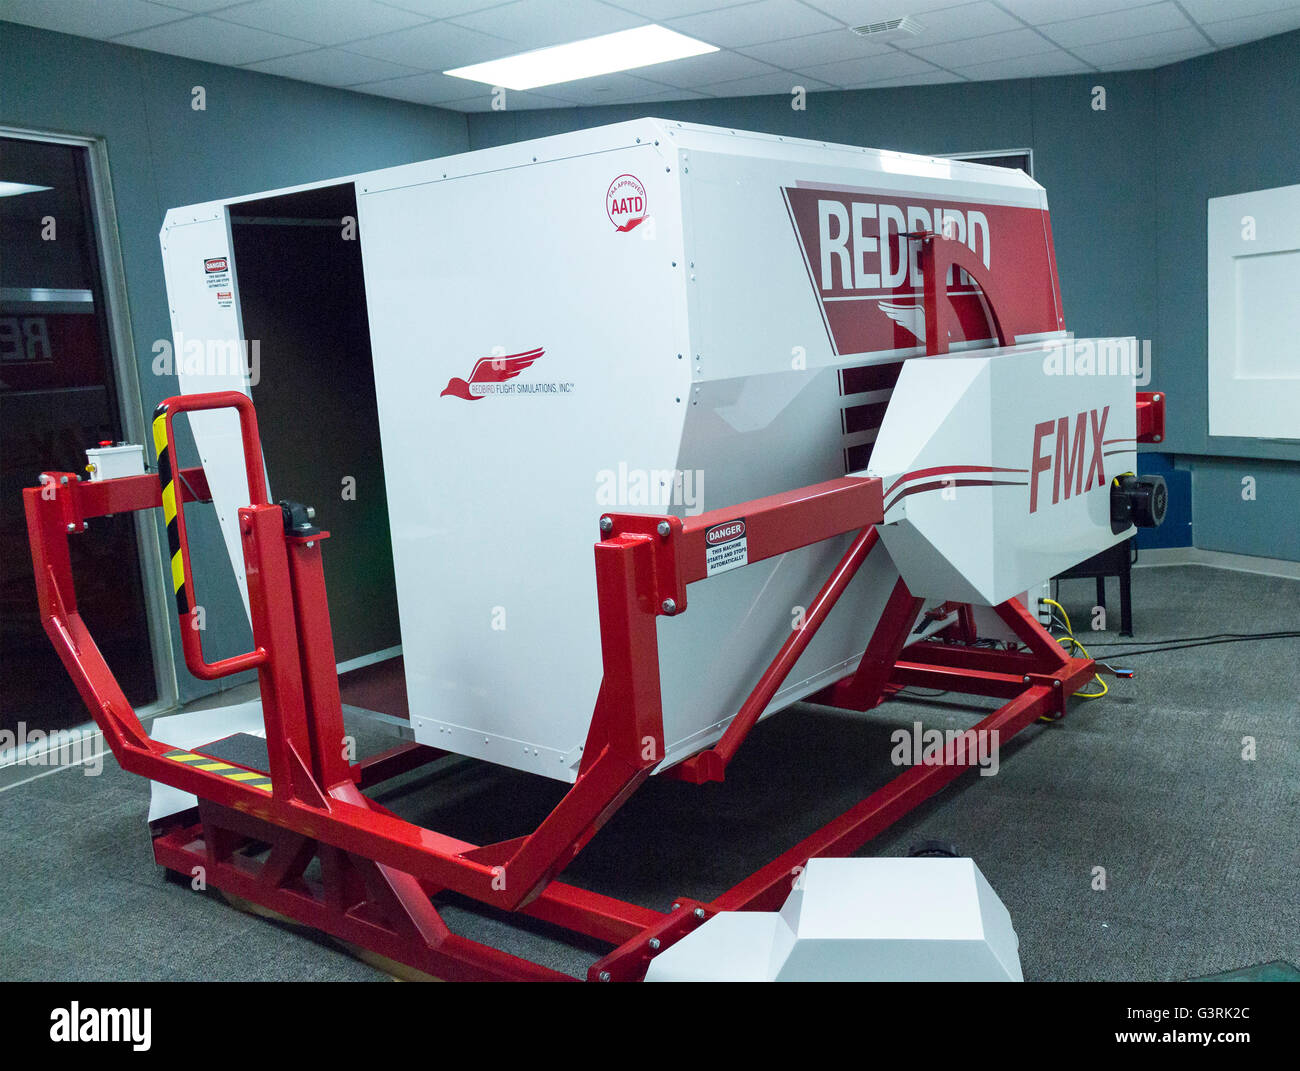 Redbird Flight Siumlator at the Canadian Aviation and Space Museum in Ottawa, Ontario, Canada - Stock Image